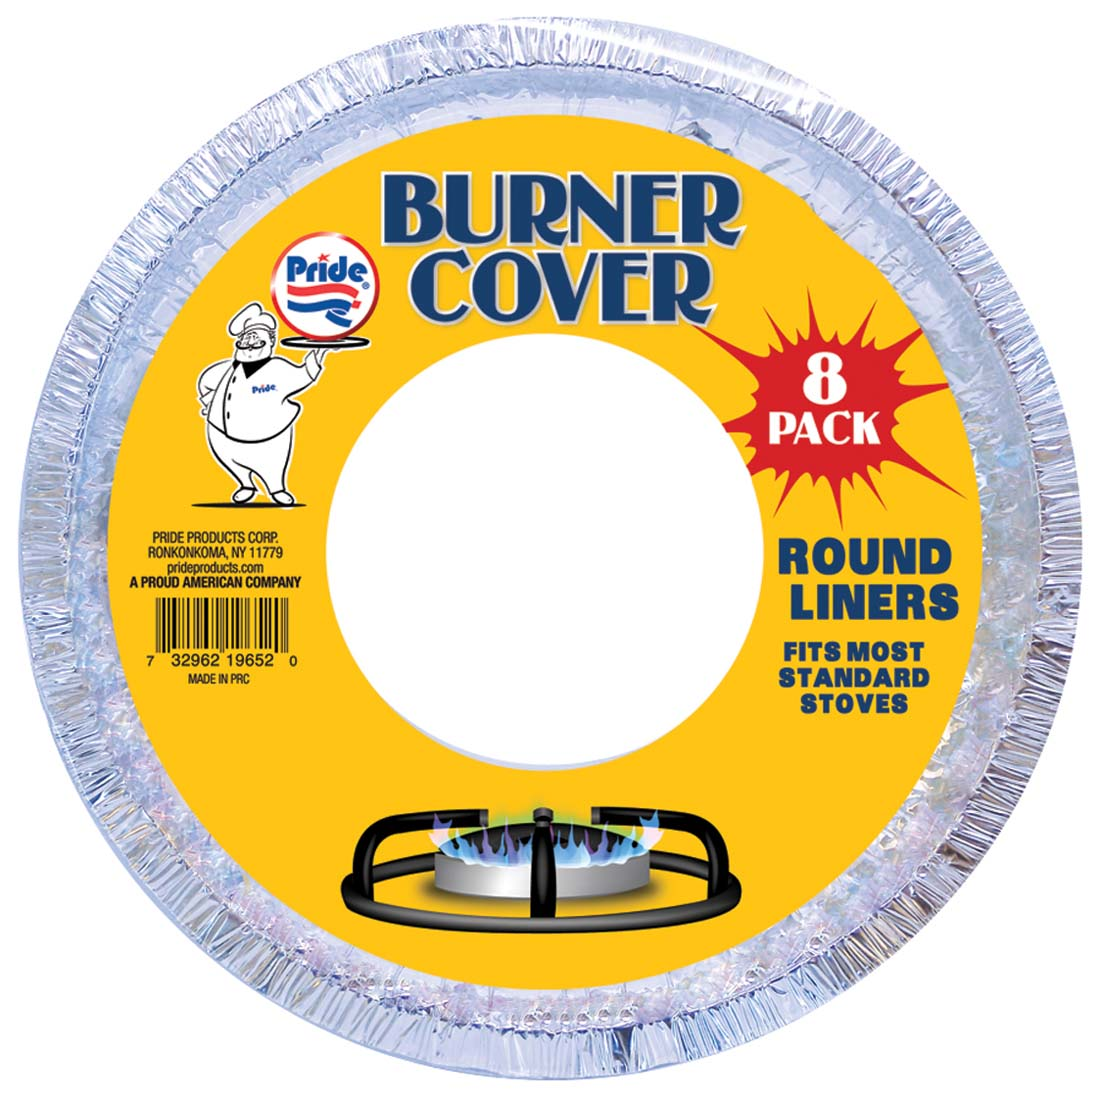 View BURNER LINER ROUND 8 PACK 7.5 INCH